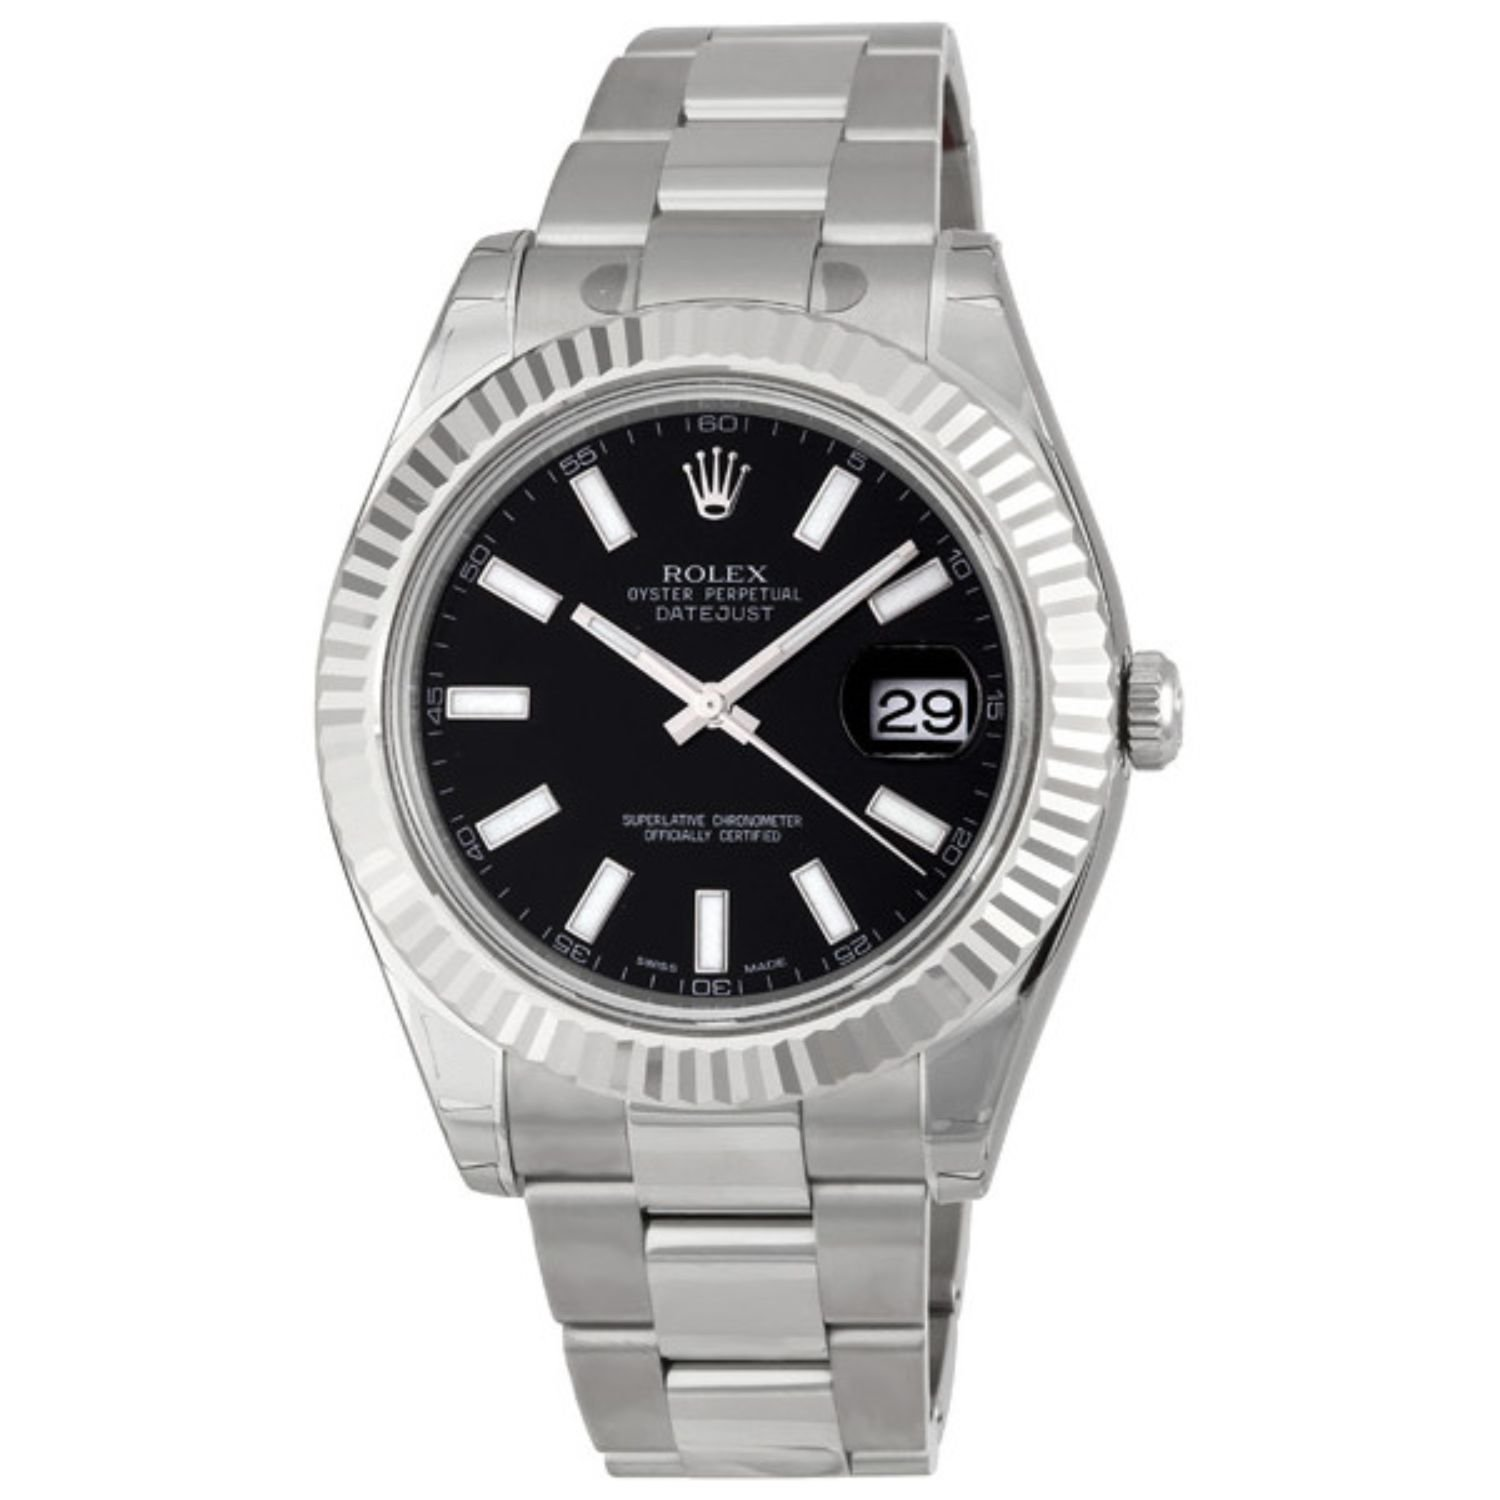 f041cce6040 Amazon.com: Rolex Oyster Perpetual DateJust II 116334: Rolex: Watches